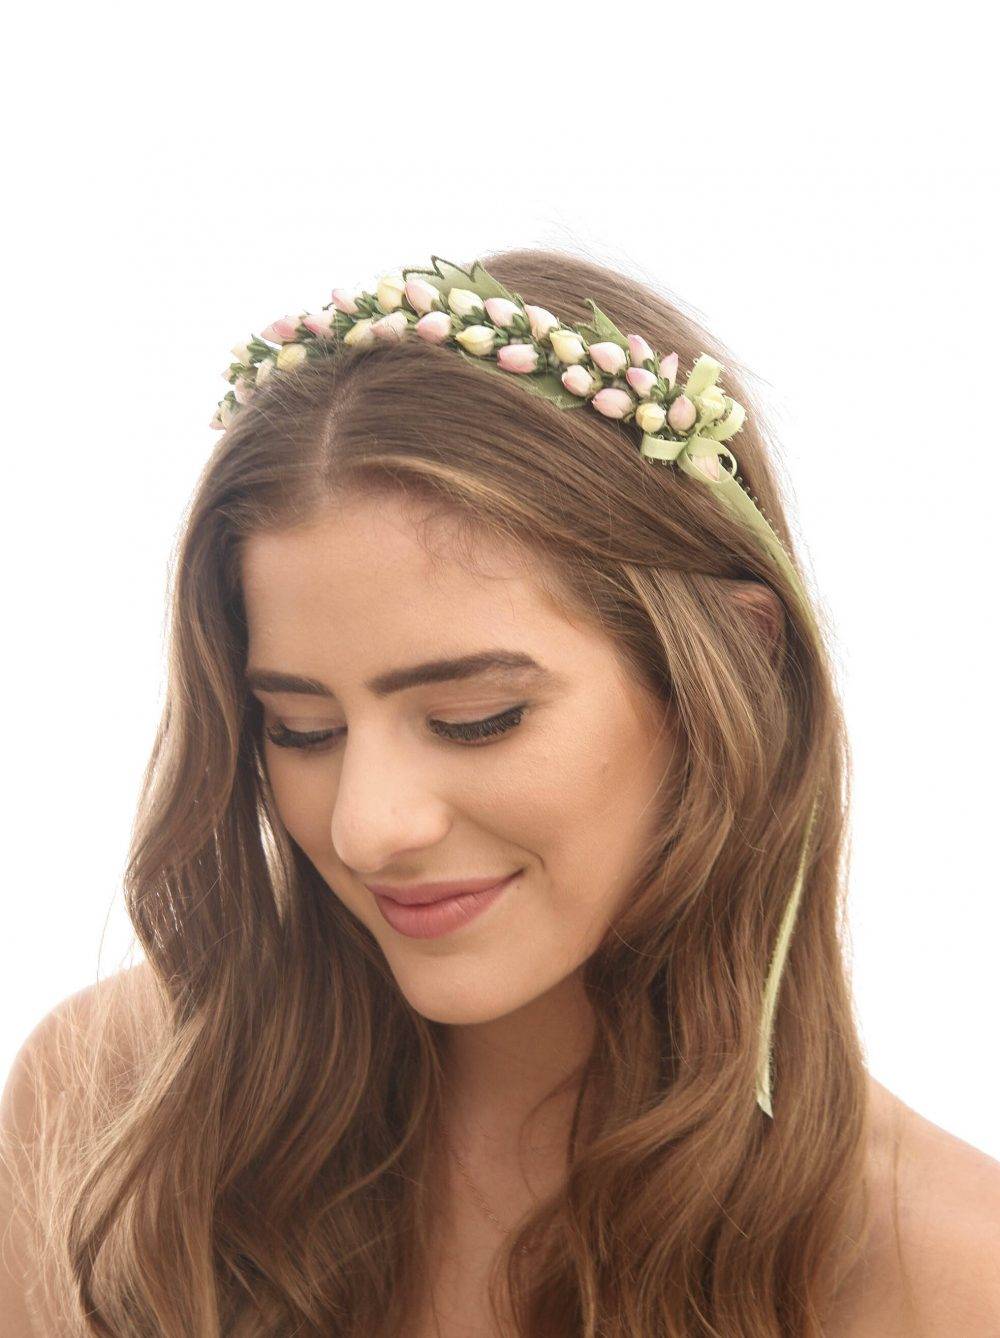 Flower Girl Headband Of Vintage Yellow & Pink Rose Buds Green Leaves, Wedding Crown Festival Photo Prop Hair Accessory